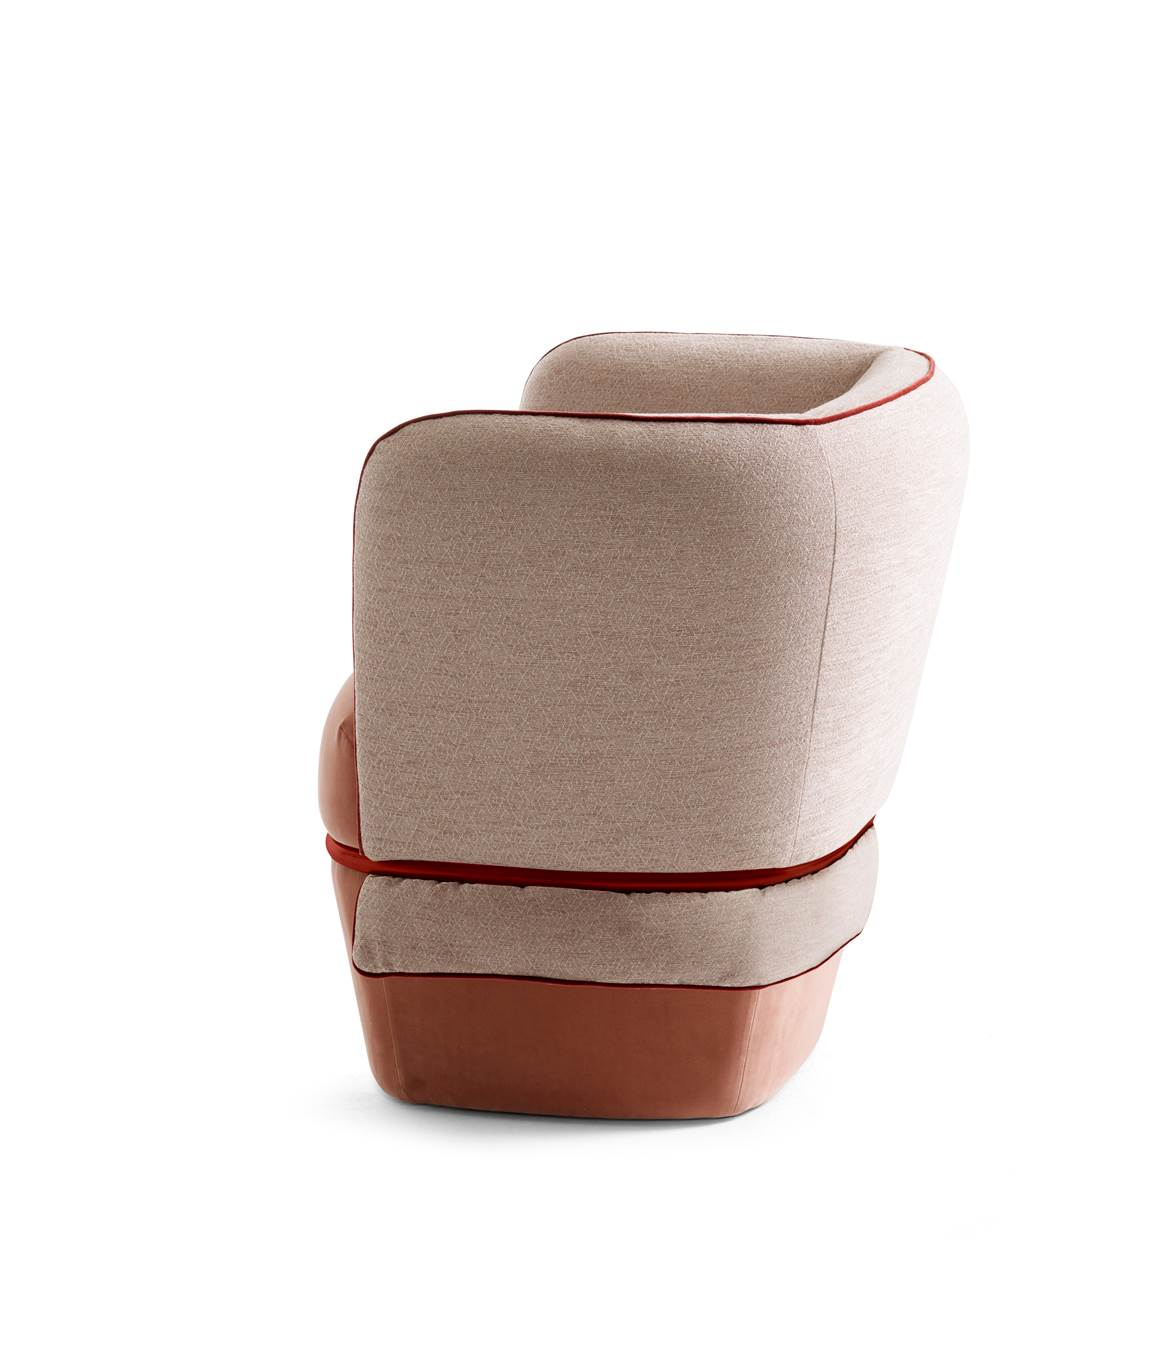 chemise armchair design by studio lido for my home collection - laboratore innocenti design office